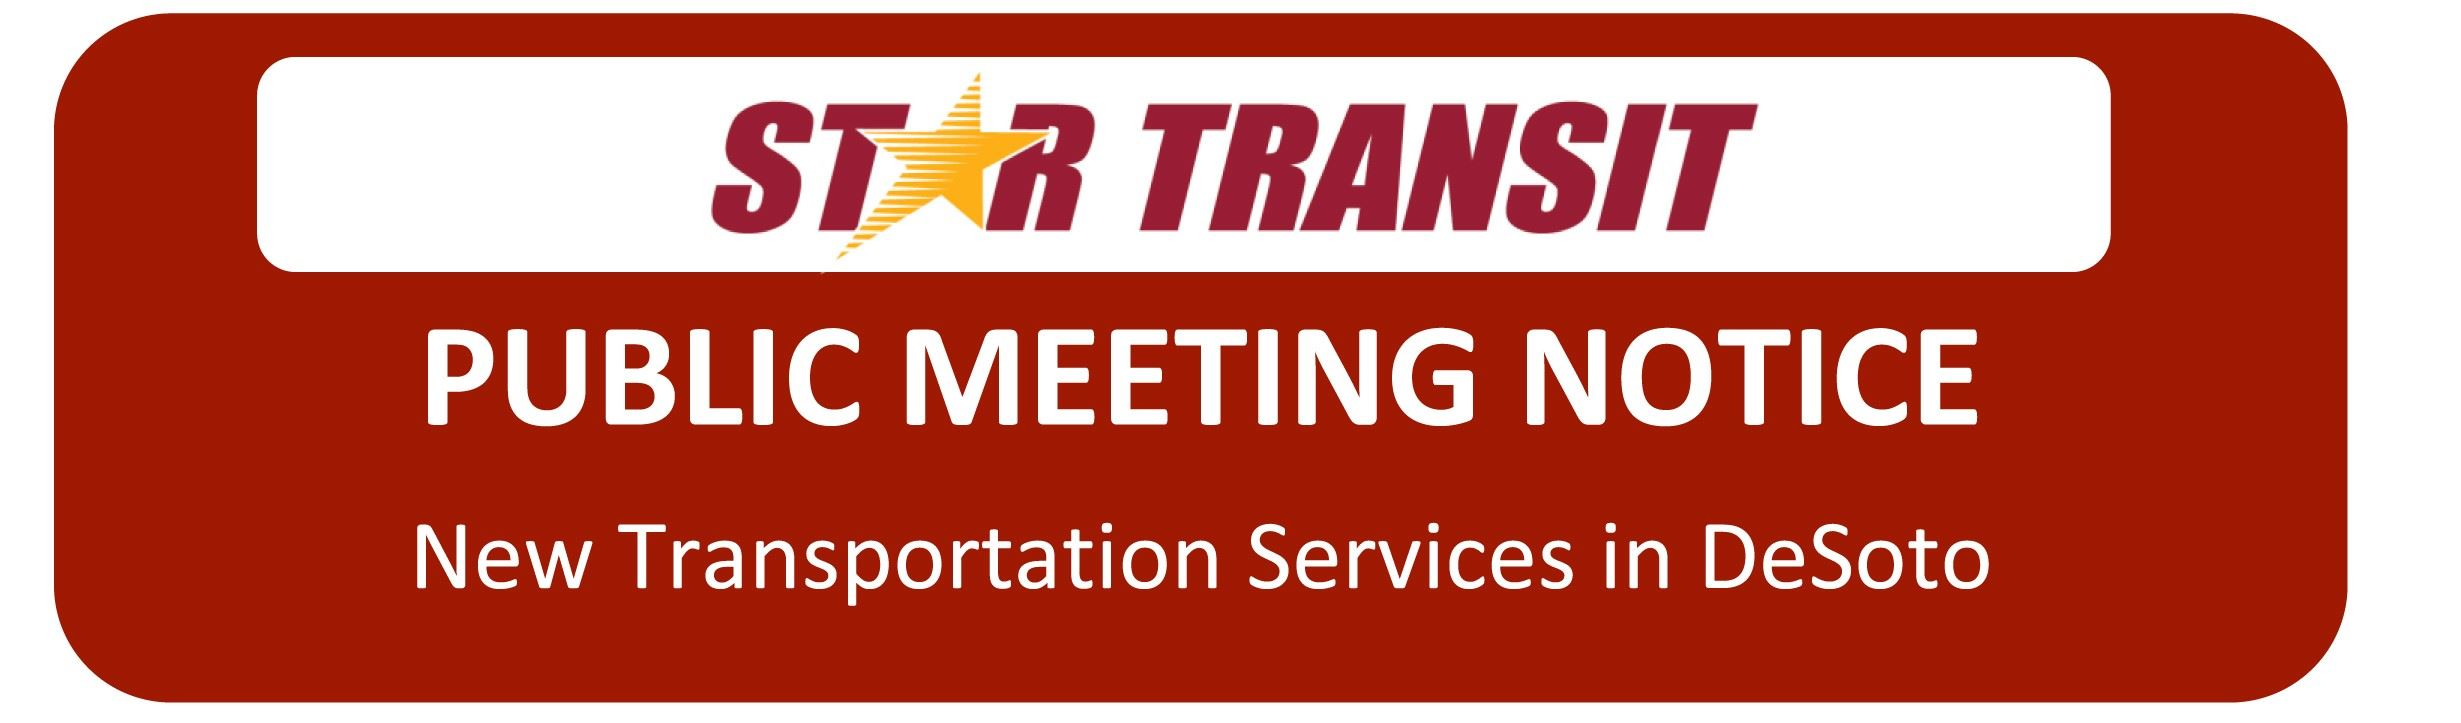 Star Transportation Mtg notice logo